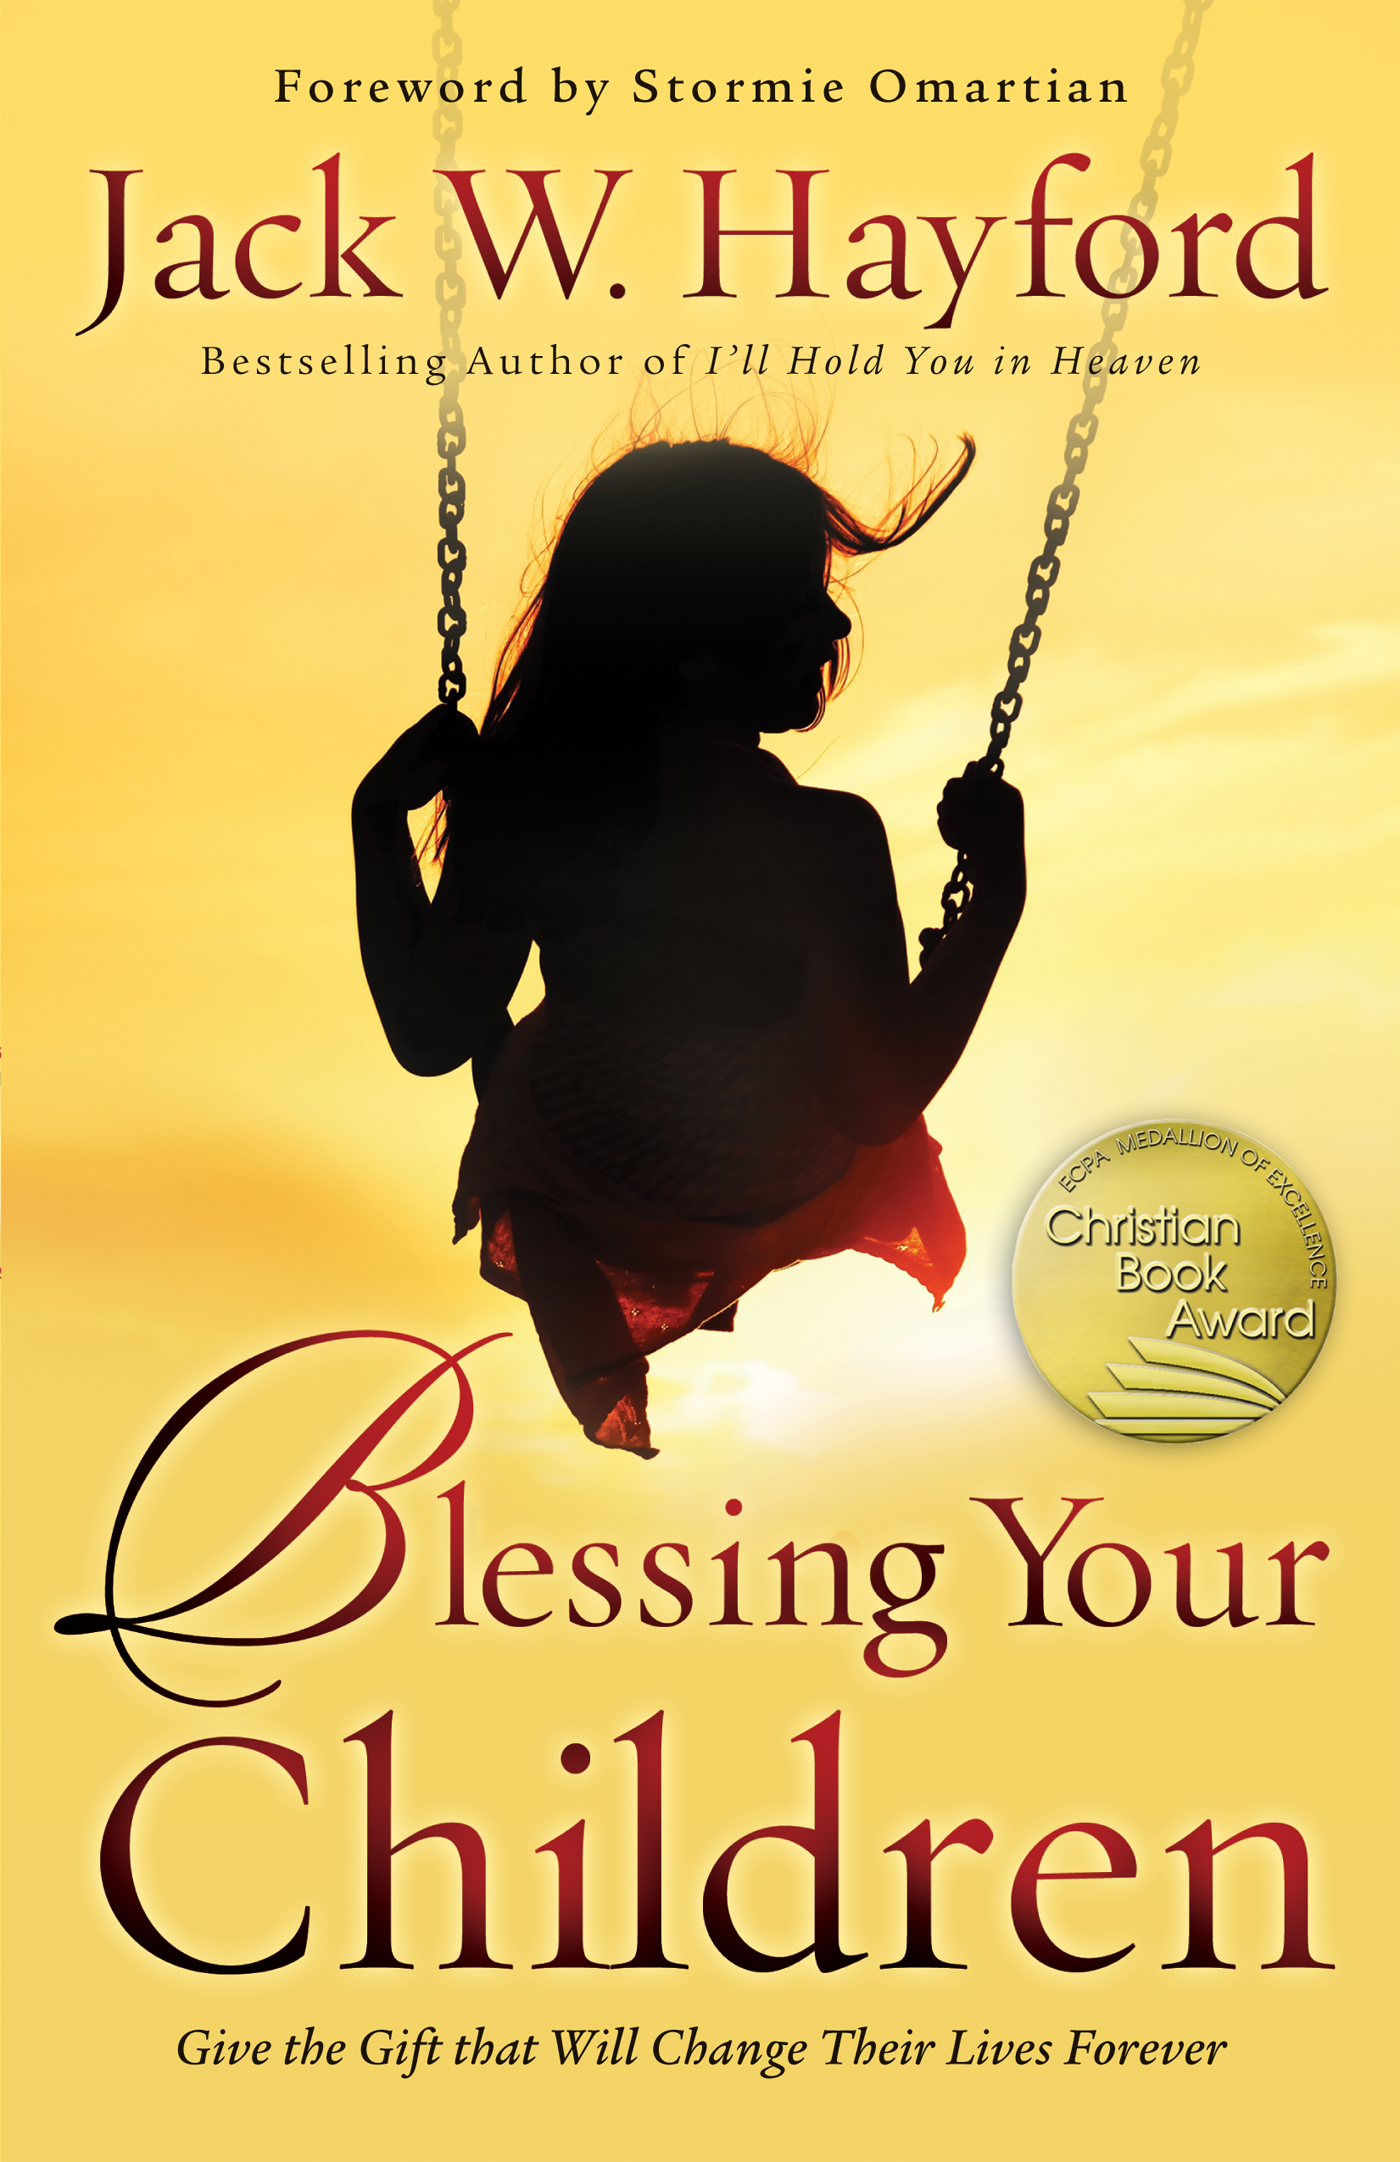 Blessing Your Children: Give the Gift that Will Change Their Lives Forever